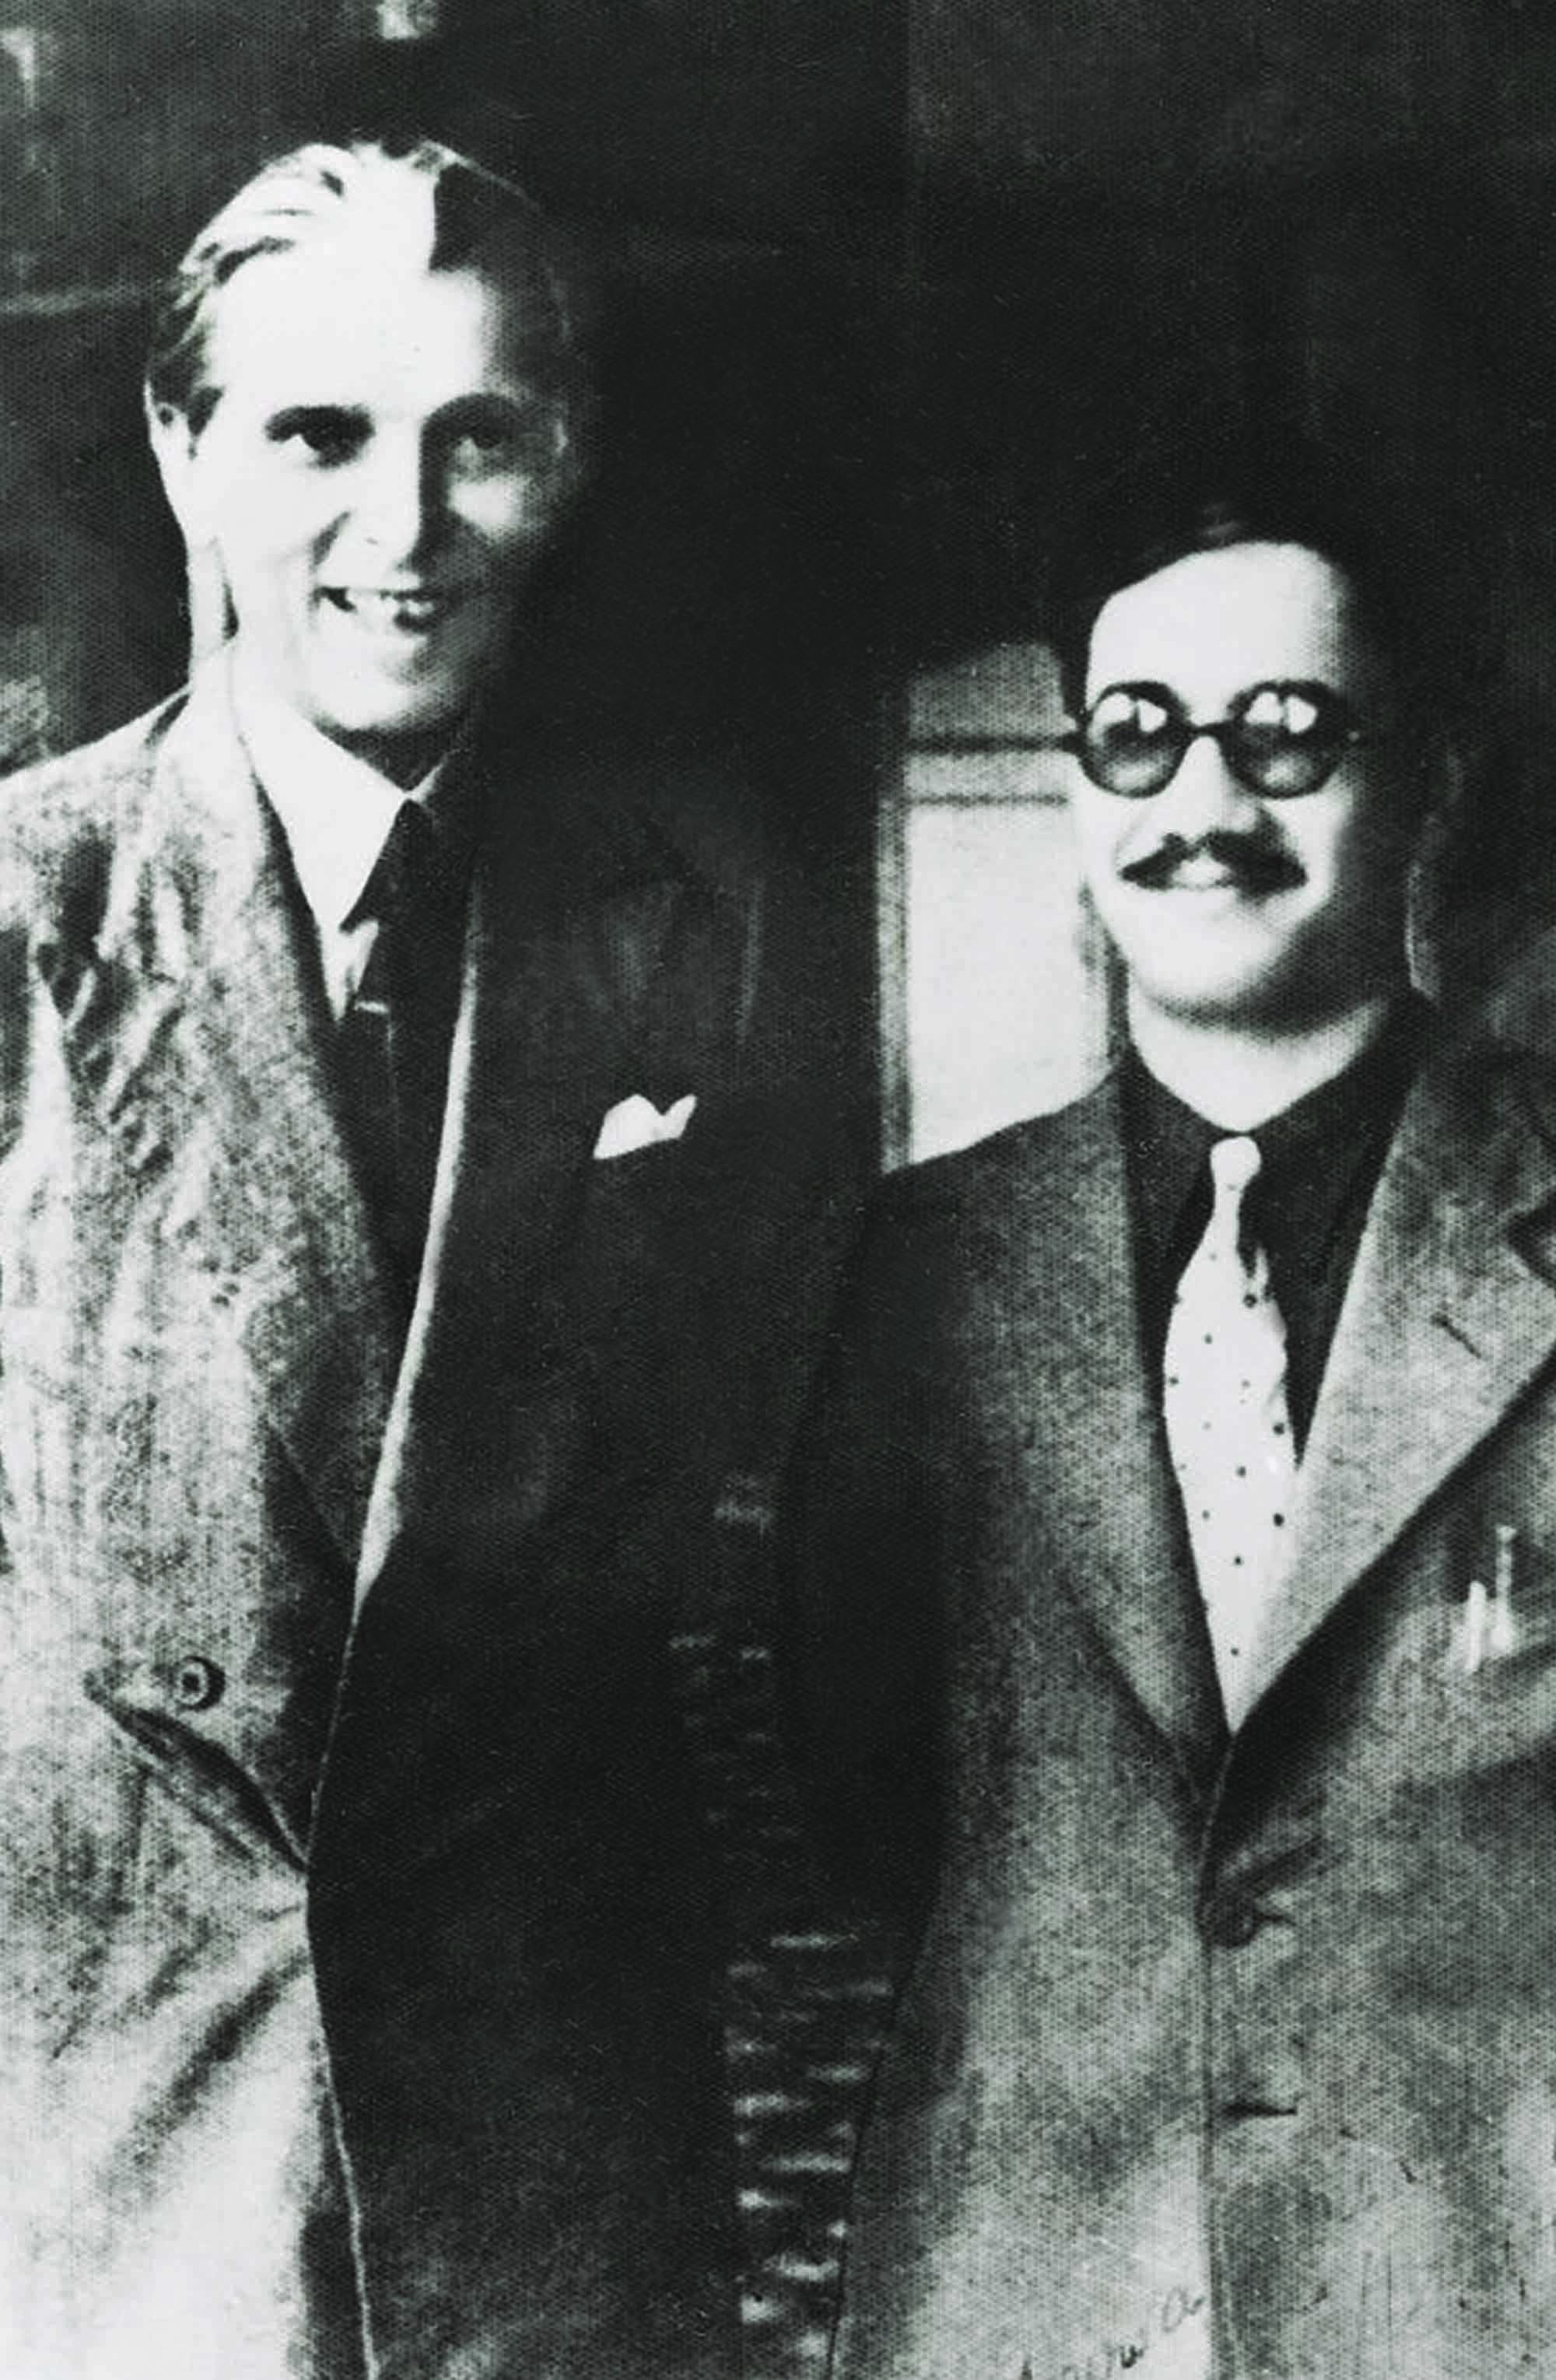 AN ENDURING FRIENDSHIP: Mr Jinnah smiling broadly by his standards while standing next to his friend and political ally, Mohammad Amir Ahmed Khan, the Raja Sahib of Mehmoodabad.